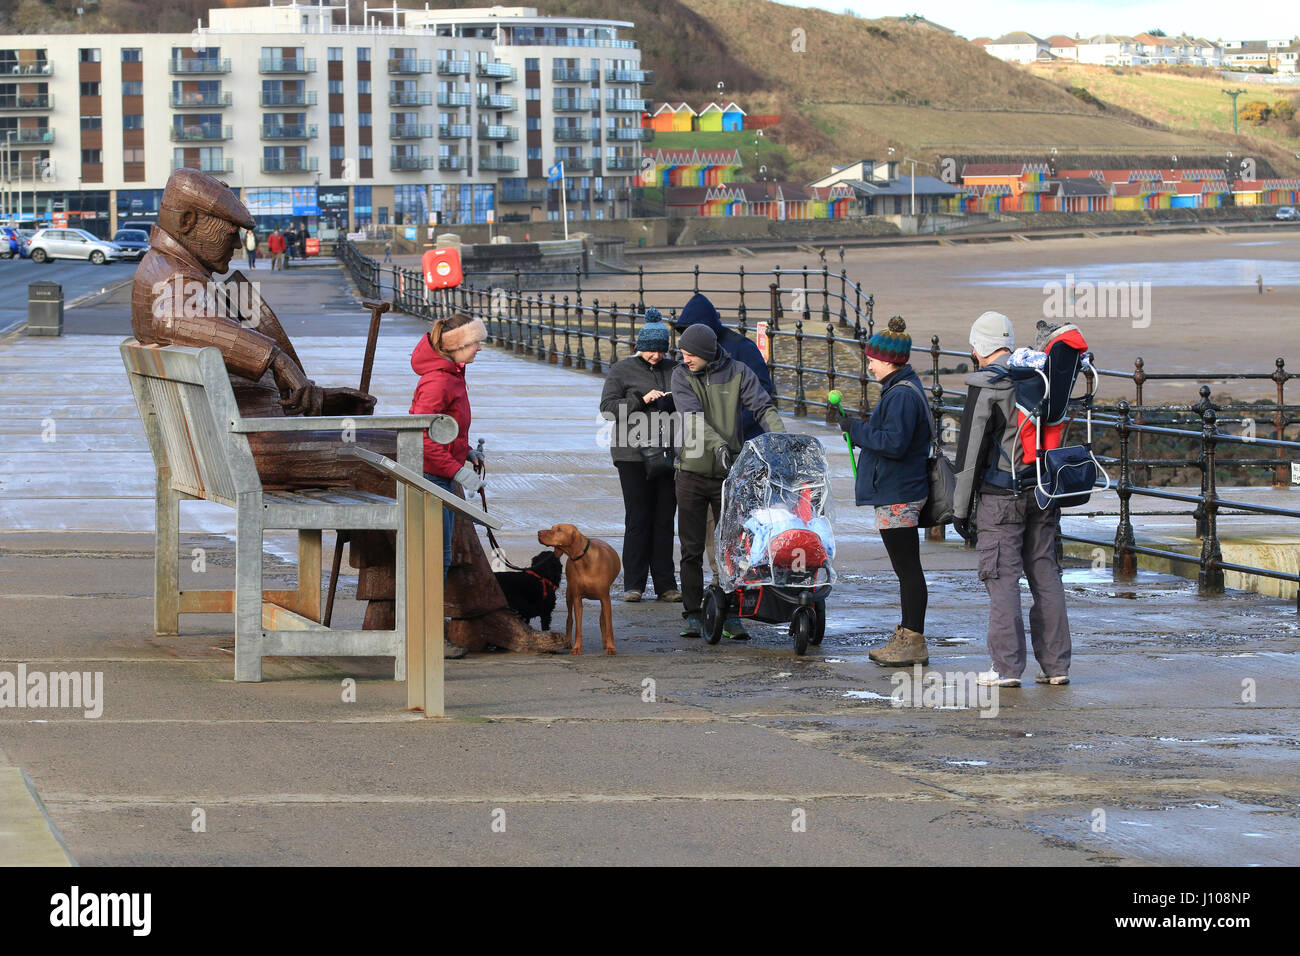 Tourists around the Freddie Gilroy sculpture on Scarborough's north bay - Stock Image